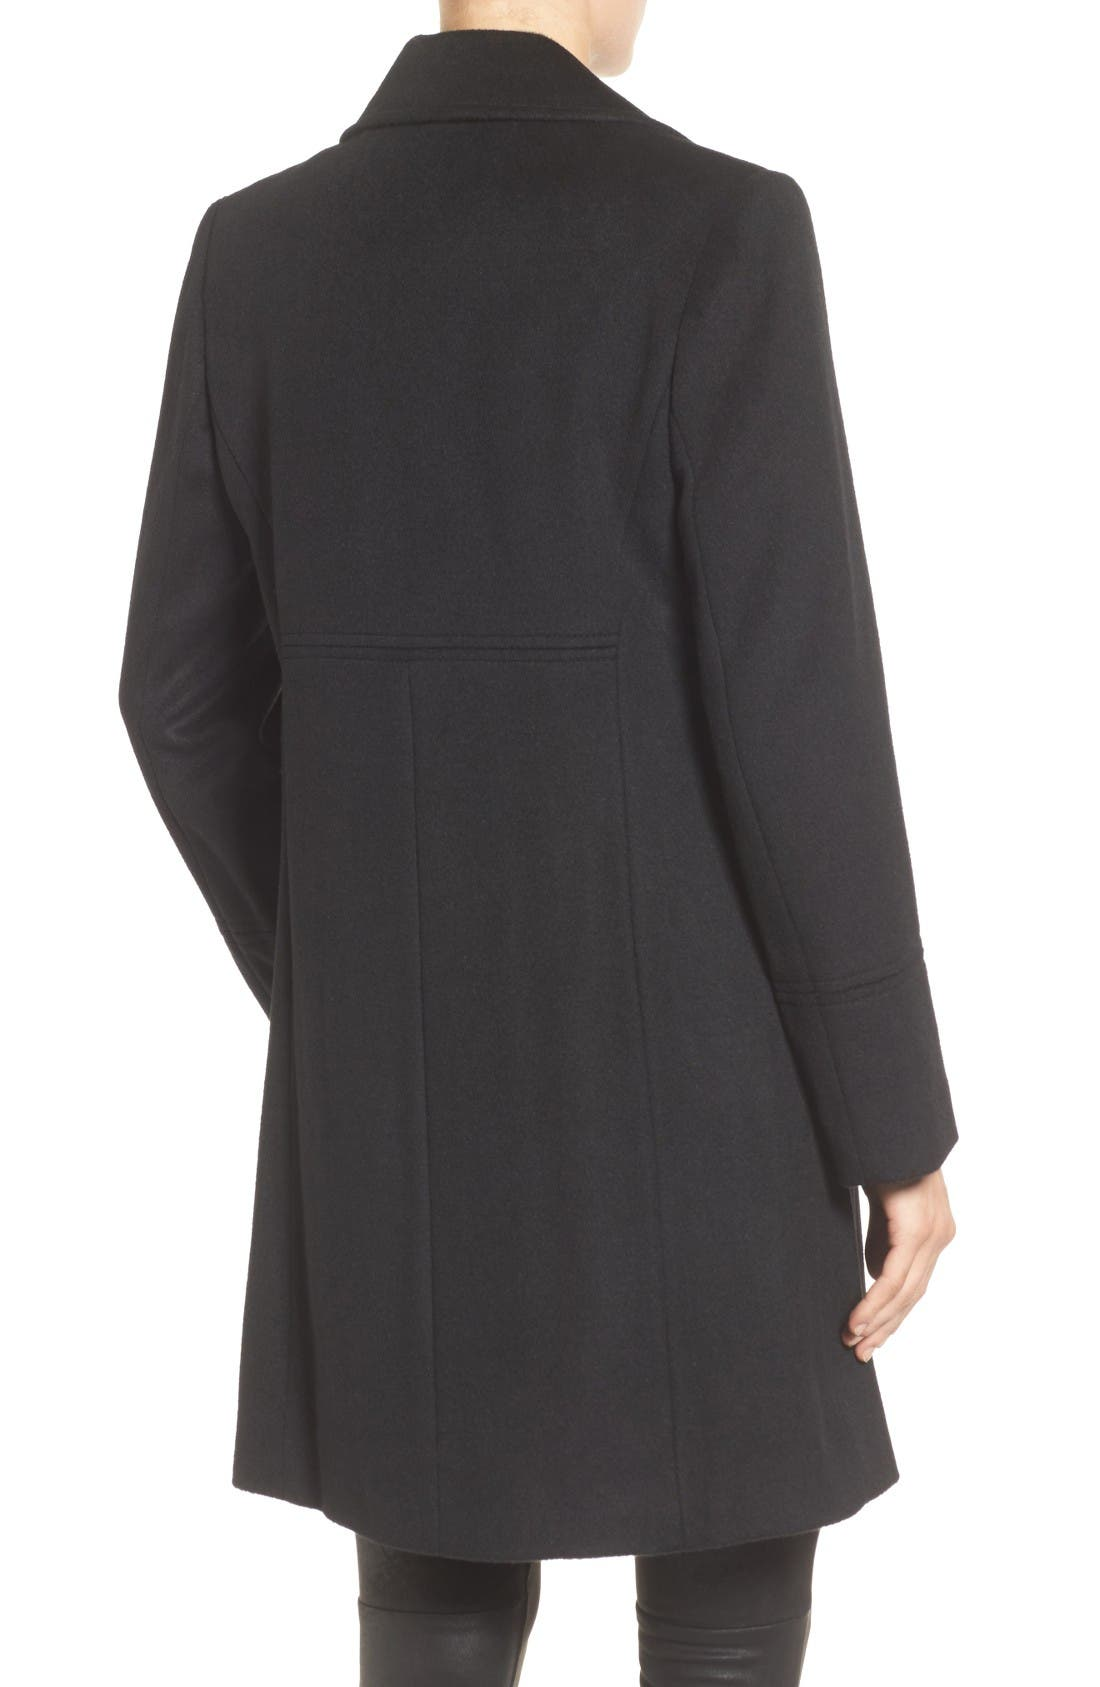 Notch Collar Wool Blend Coat,                             Alternate thumbnail 2, color,                             Black